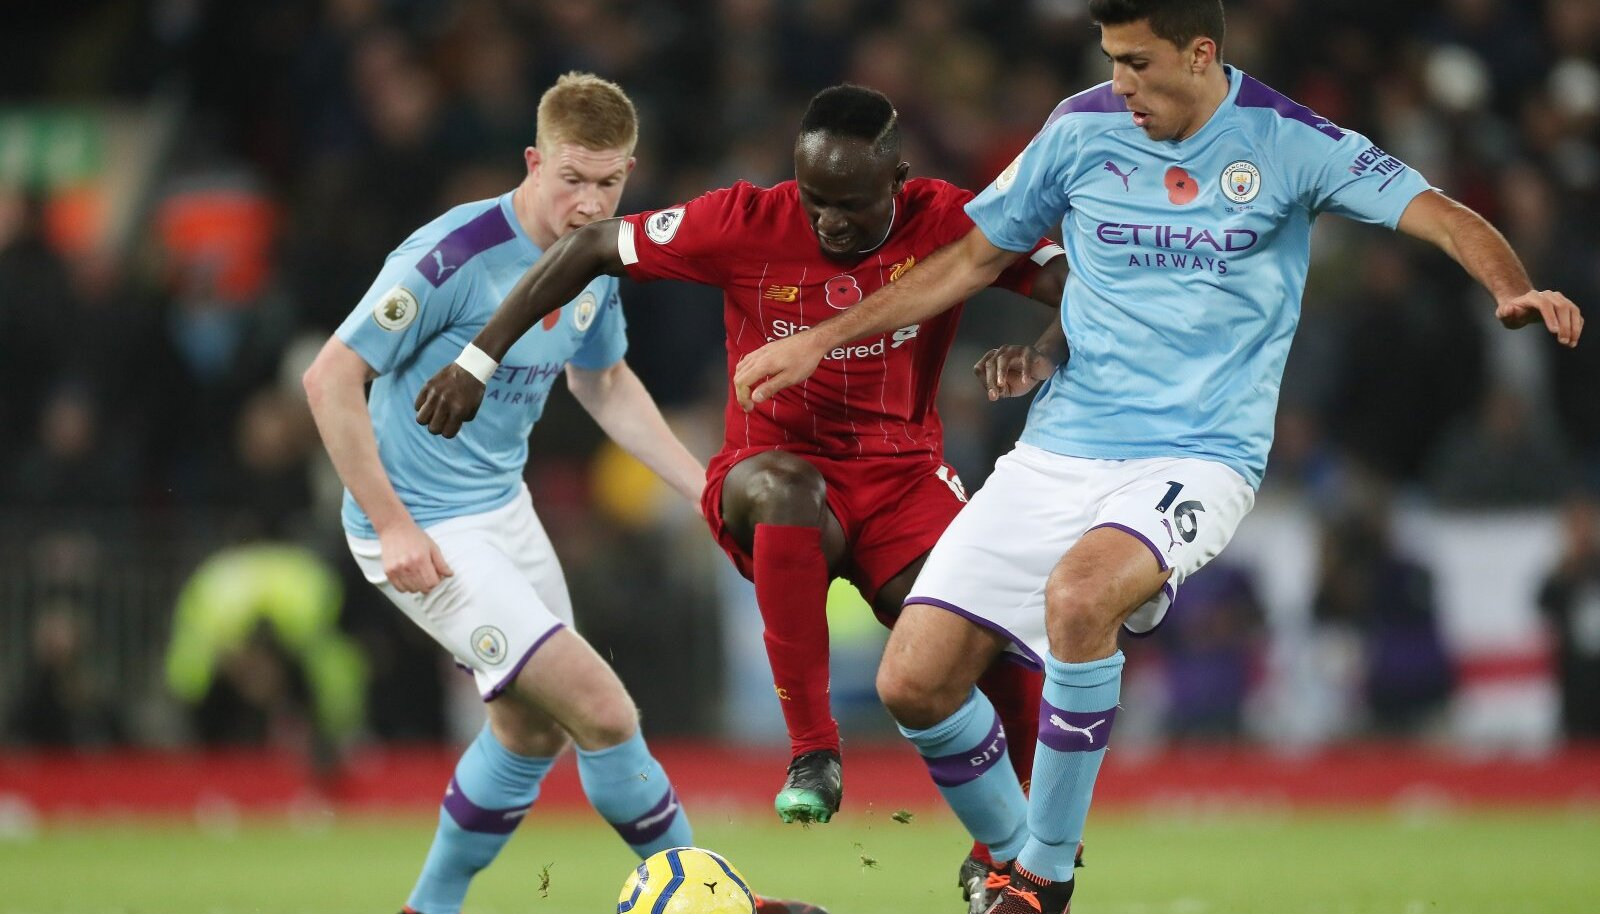 Football - 2019 / 2020 Premier League - Liverpool vs. Manchester City Sadio Mane of Liverpool competes with Rodri of Ma